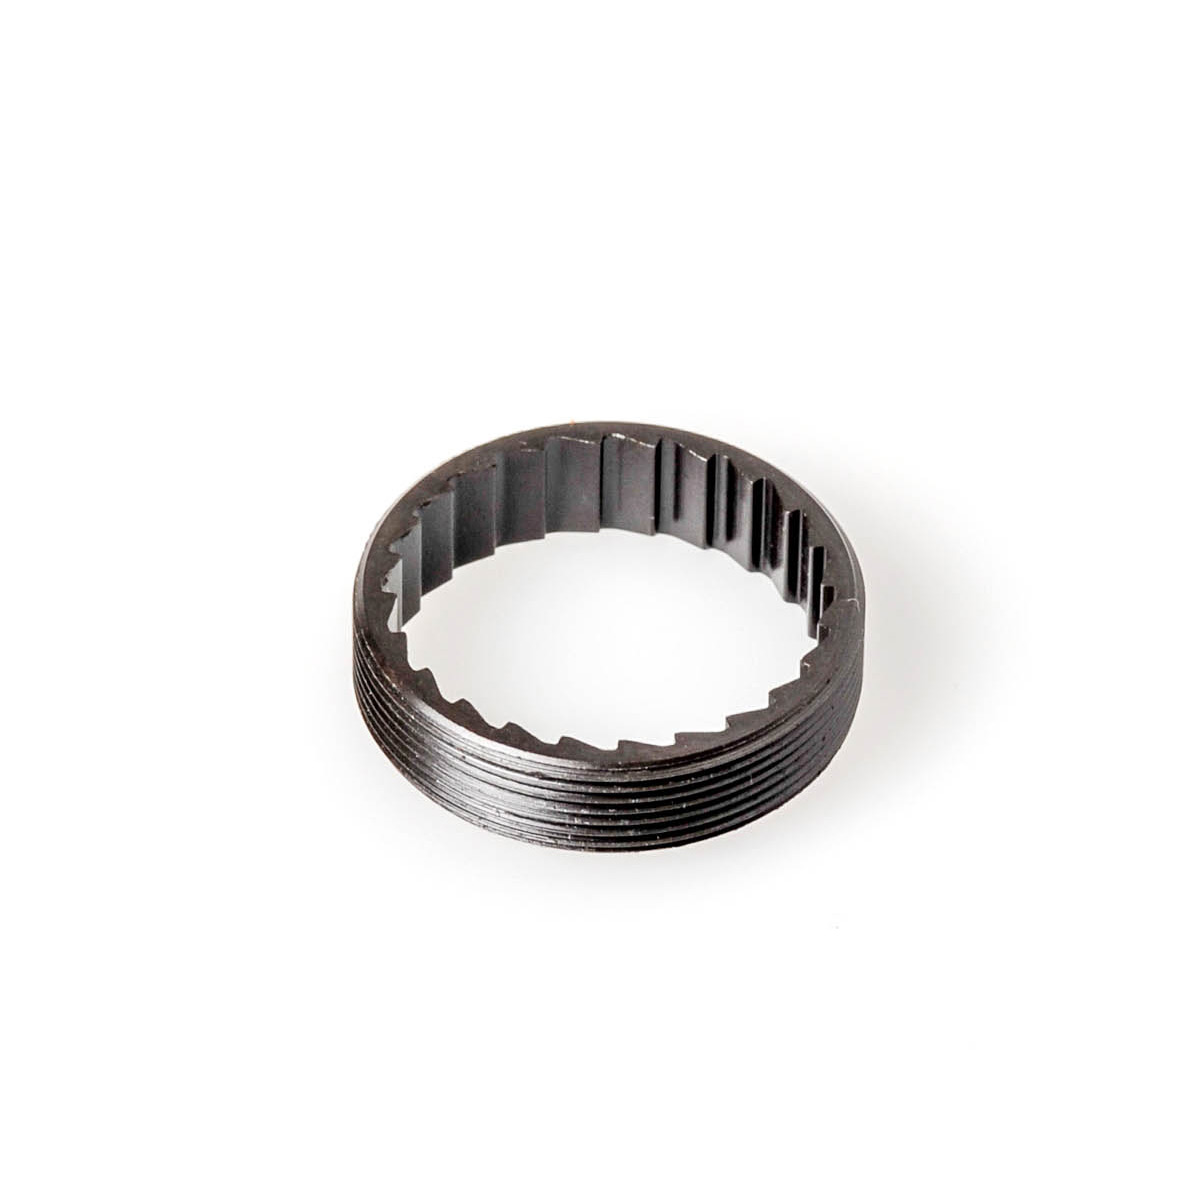 DT SWISS Ring Nut For 3-Pawl Hubs